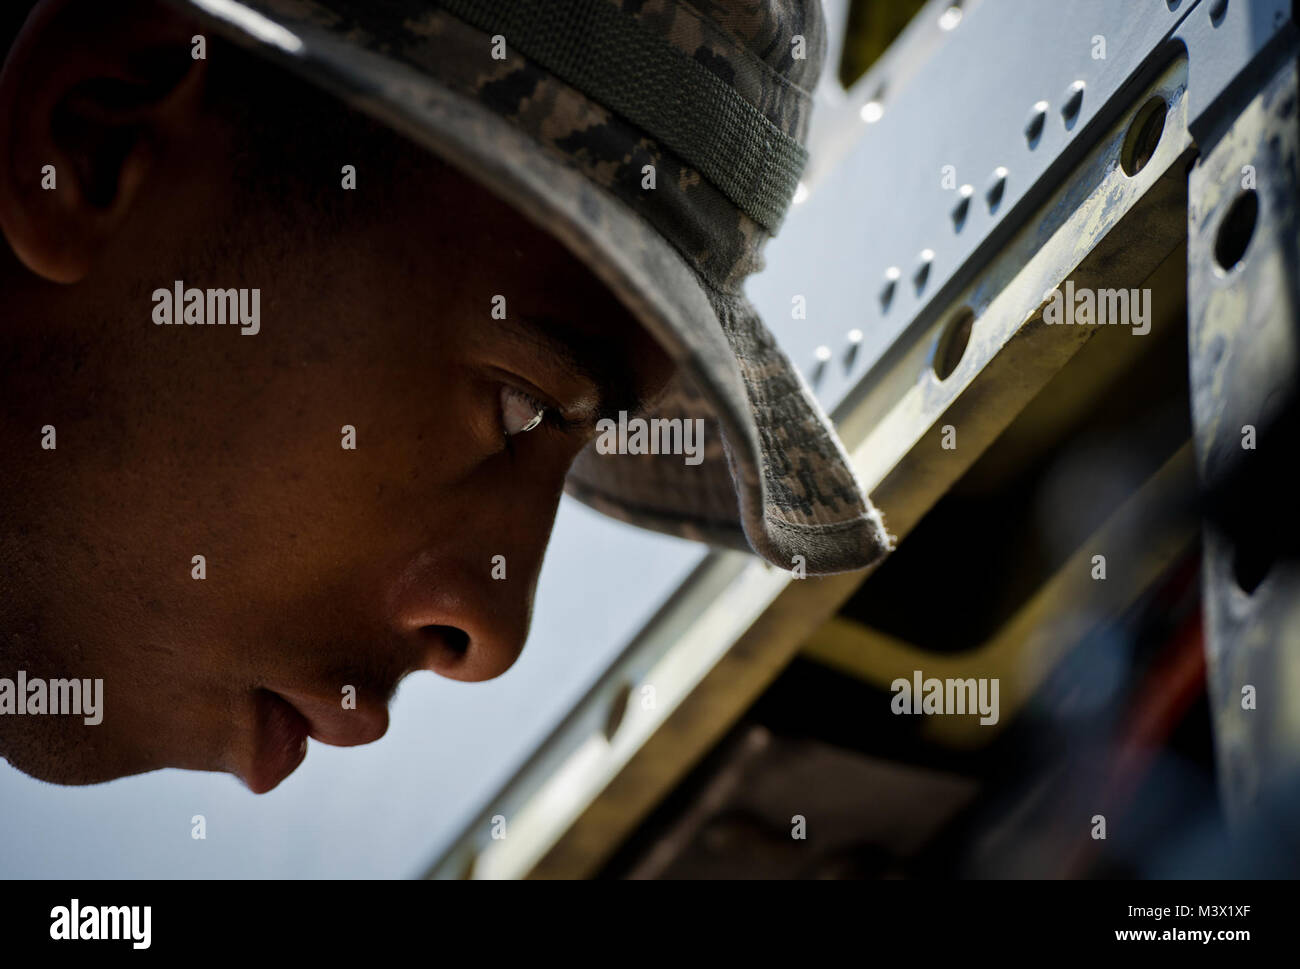 Senior Airman Aaron Augustus looks inside one of the four Rolls-Royce AE 2100D3 turboprop engines on a WC-130 Hercules - Stock Image